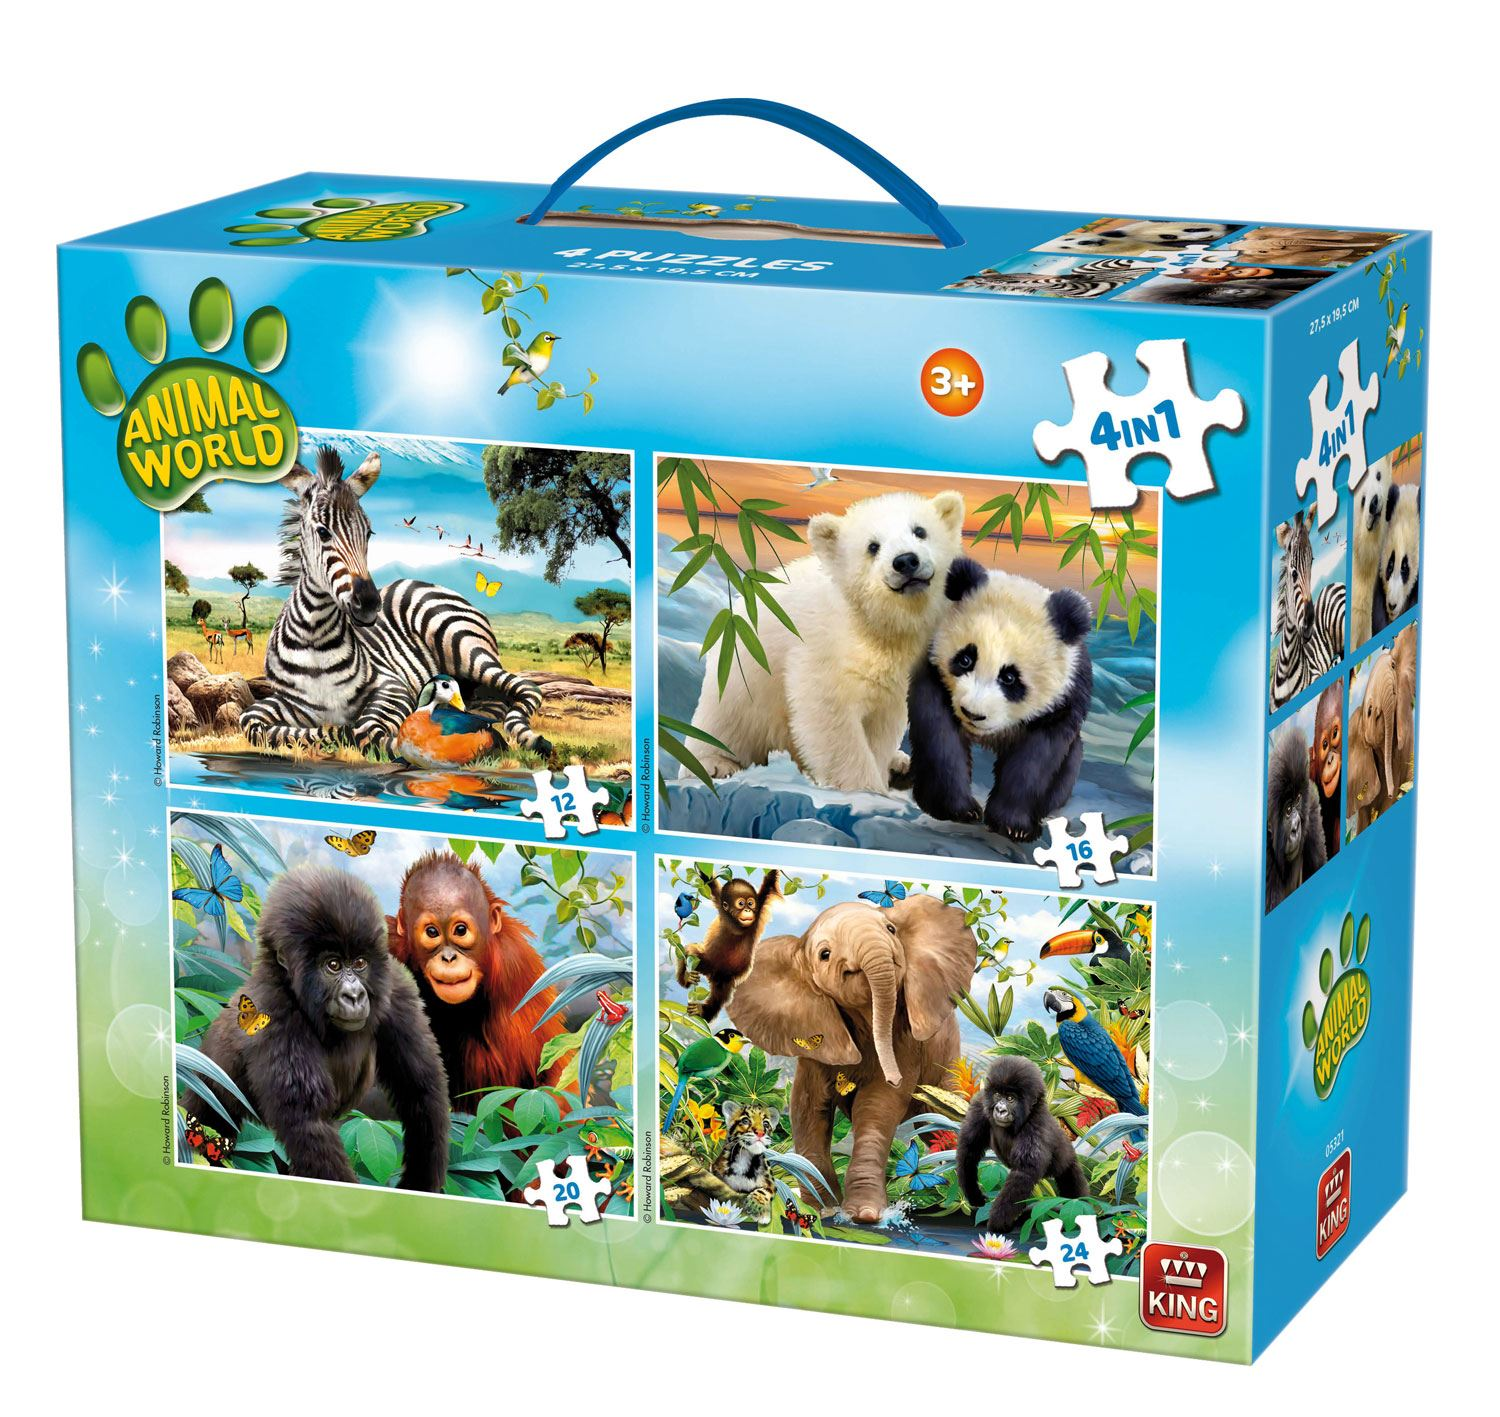 King Animal World 4-in-1 Carry Case Jigsaw Puzzles (12 - 24 Pieces)